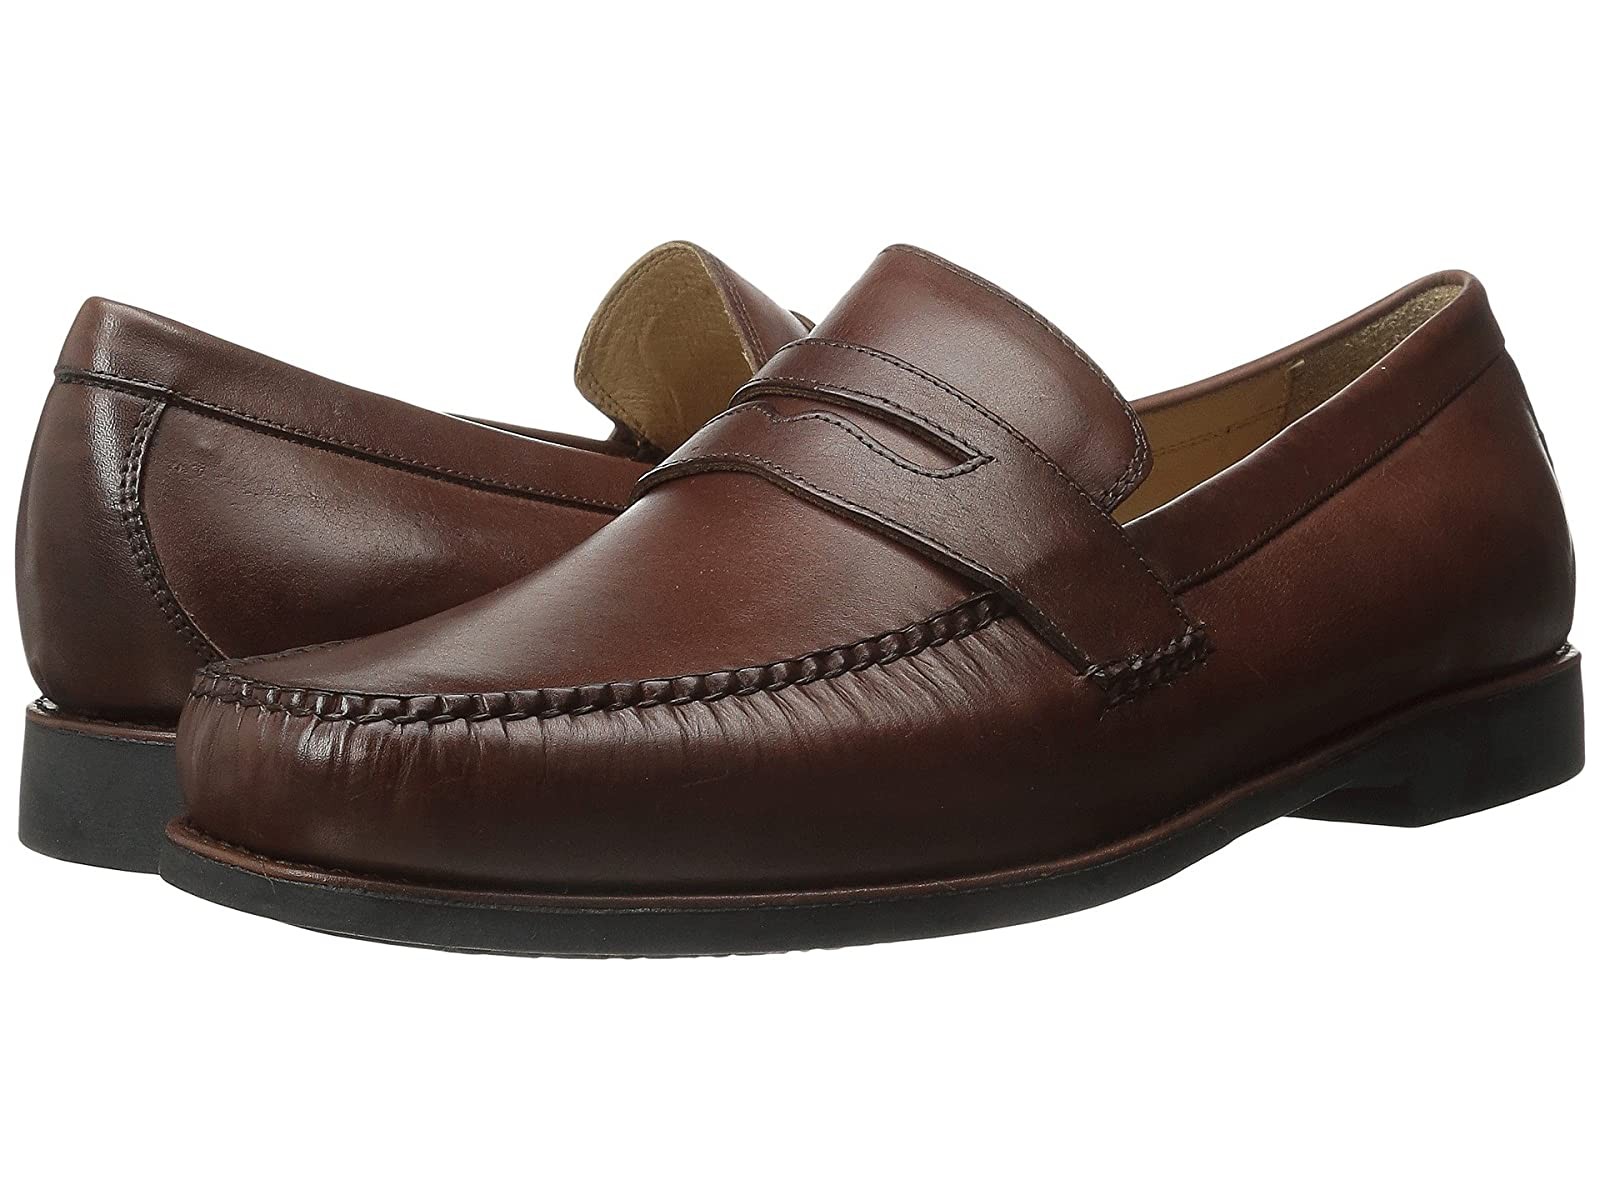 Johnston & Murphy Ainsworth Penny LoaferAtmospheric grades have affordable shoes